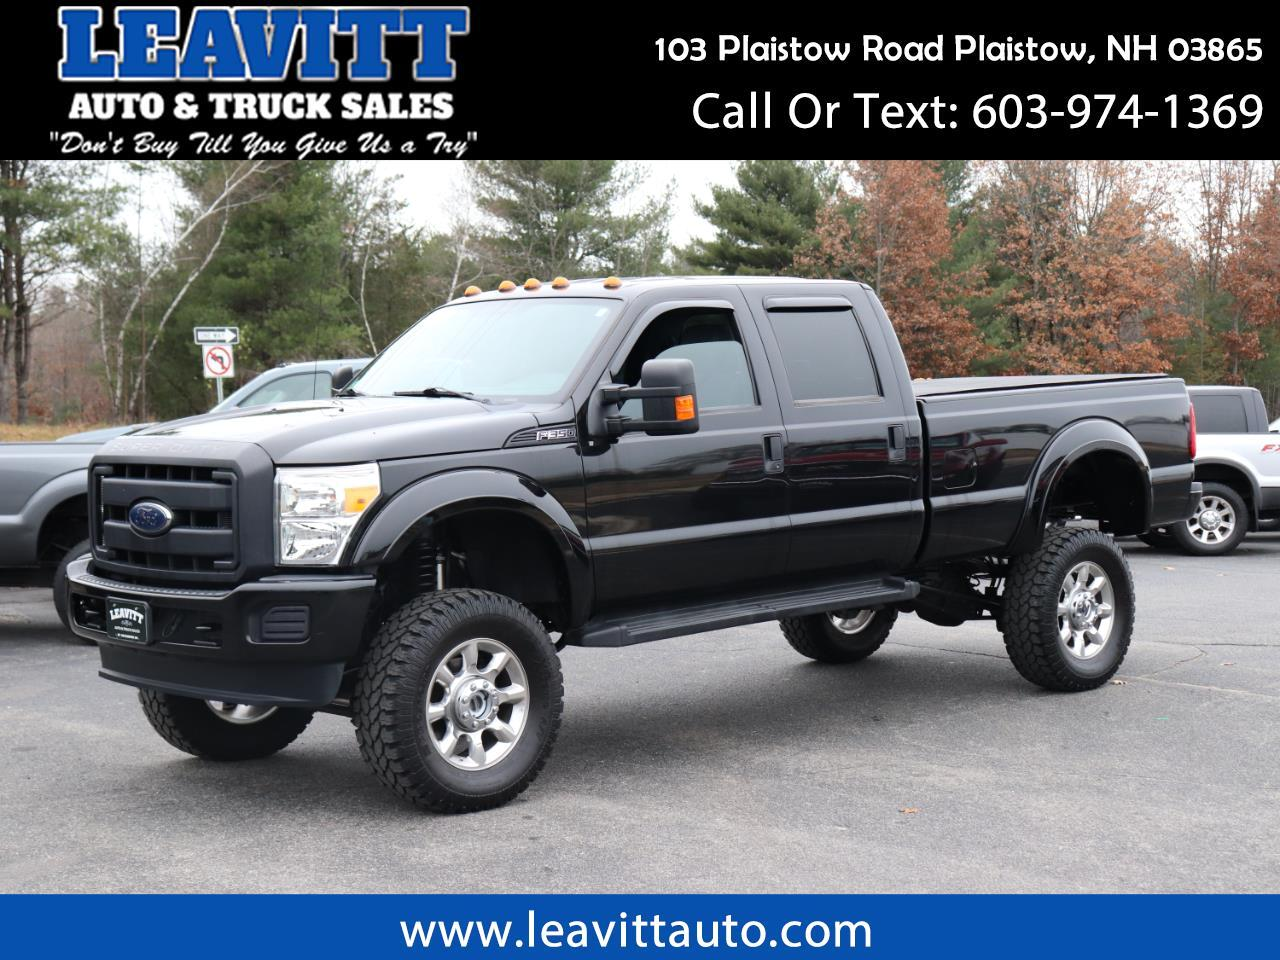 Used Cars Plaistow Nh Trucks Leavitt Auto And Truck 1964 Ford F250 4x4 2013 F 350 Sd Xlt Crew Cab Lifted 36k Miles